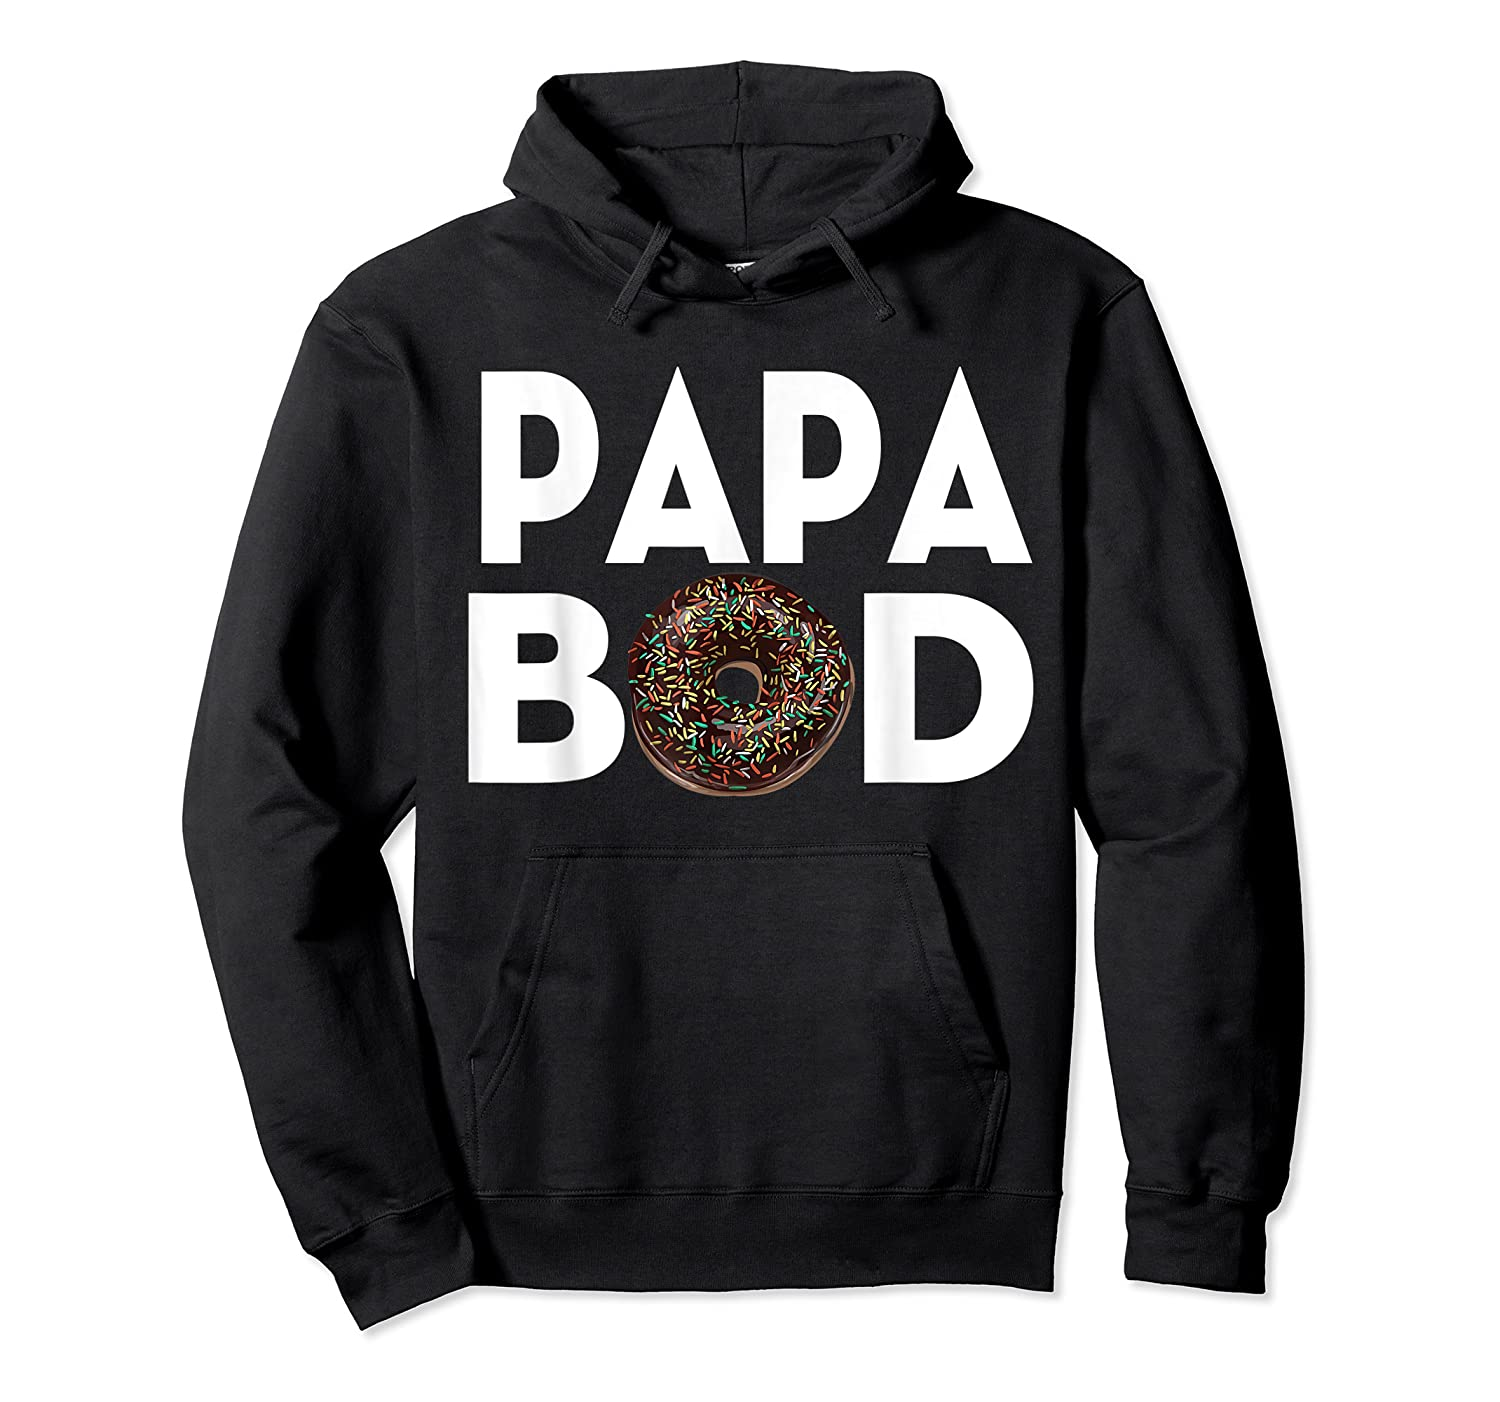 S Donut Papa Bod T Shirt Funny Father S Day Gift Unisex Pullover Hoodie